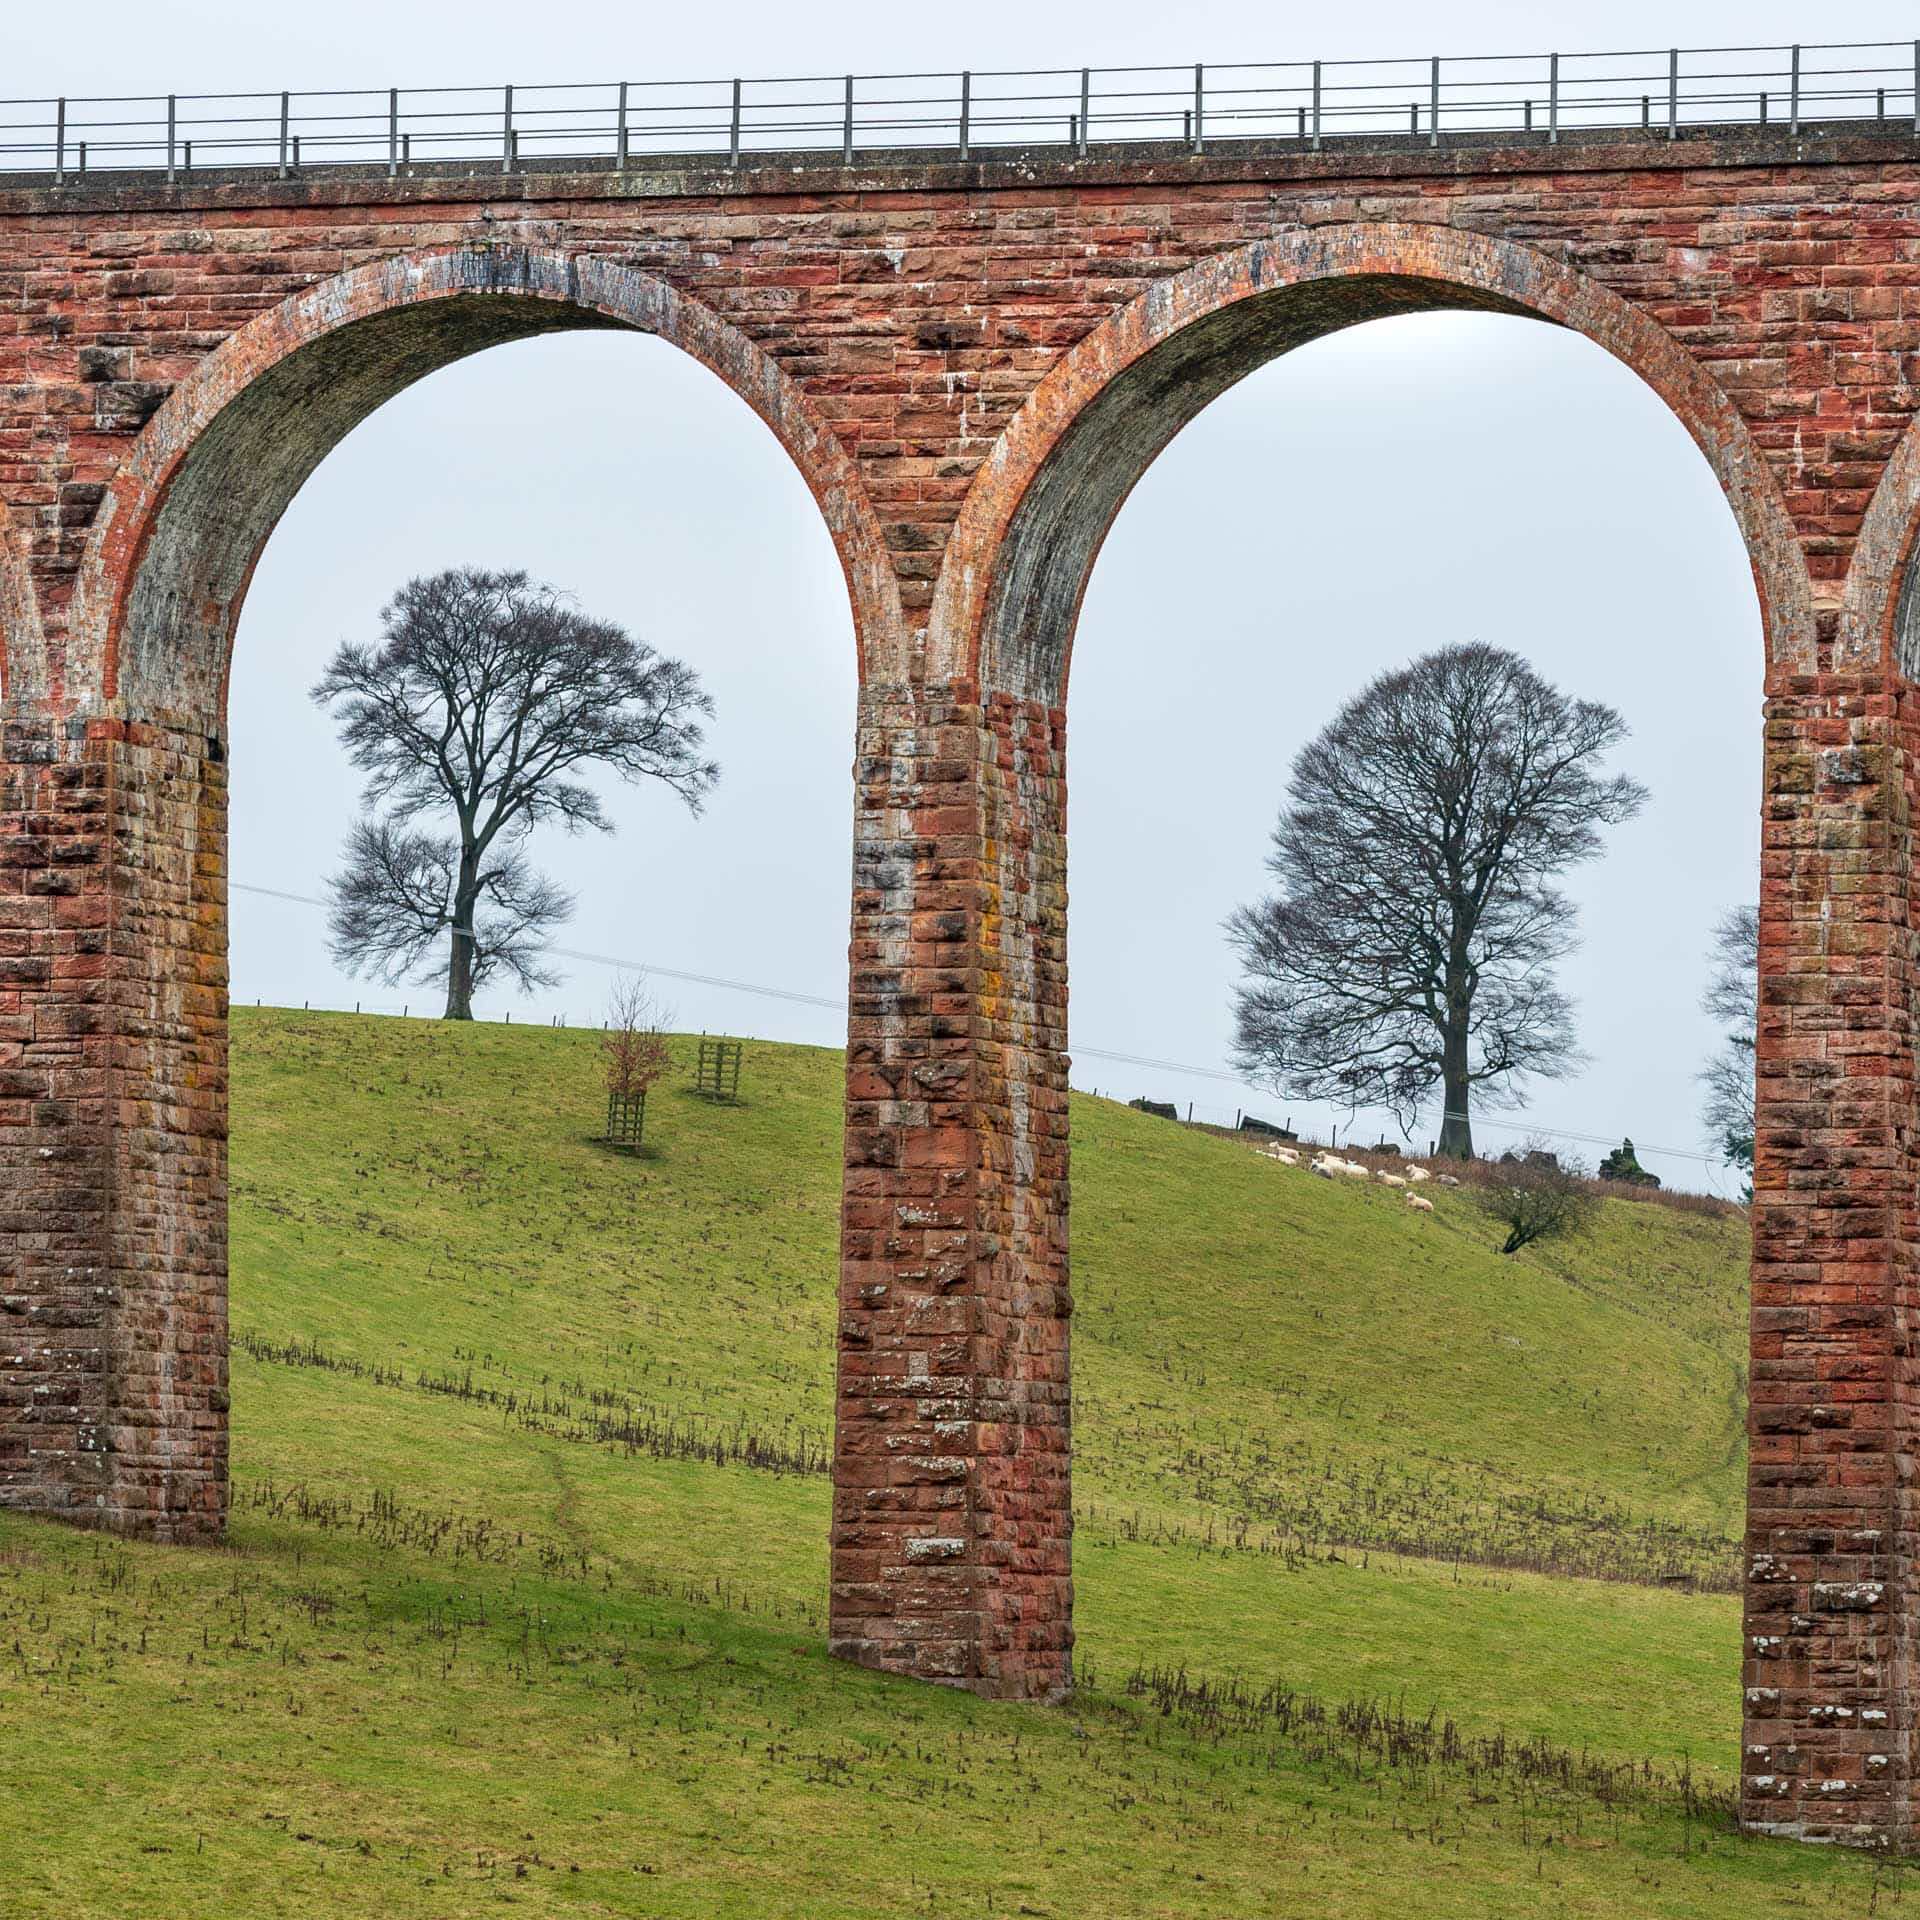 Leaderfoot Viaduct arches | f/8 1/25sec ISO-100 85mm